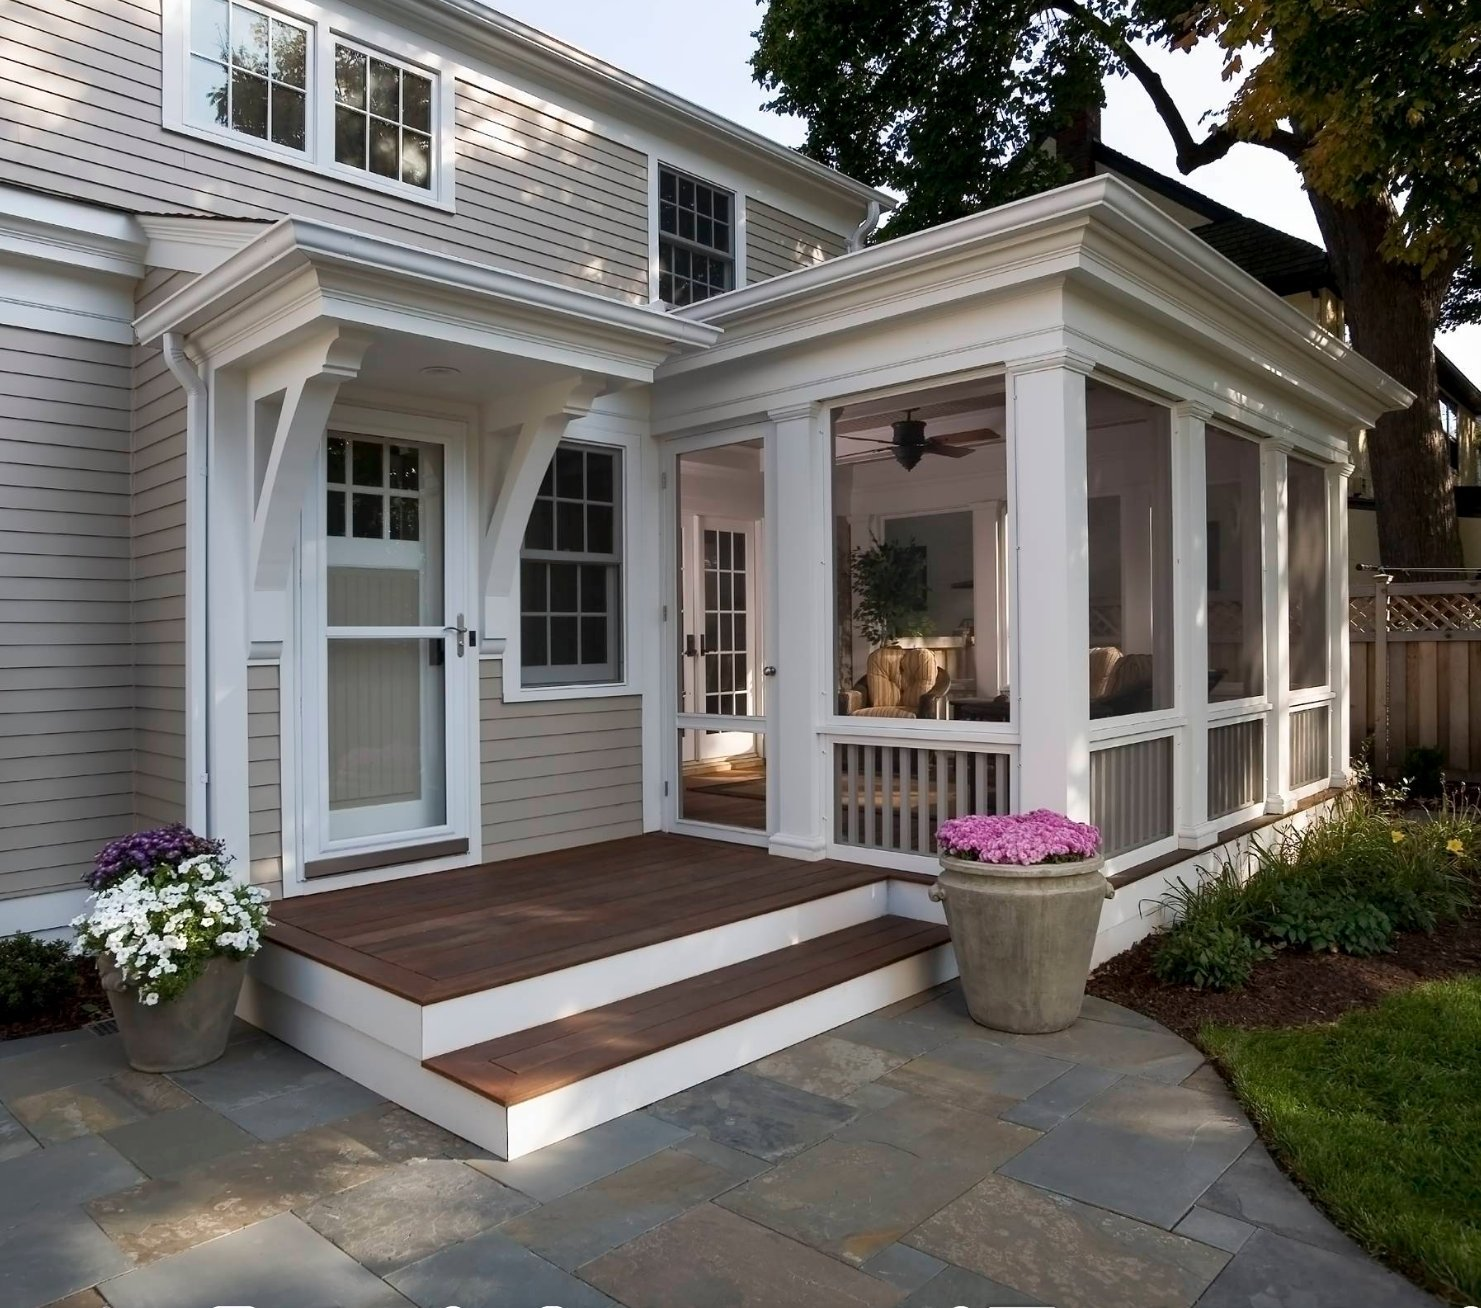 10 Most Recommended Screened In Porch Design Ideas creative screened porch design ideas awesome designs inside 18 2021